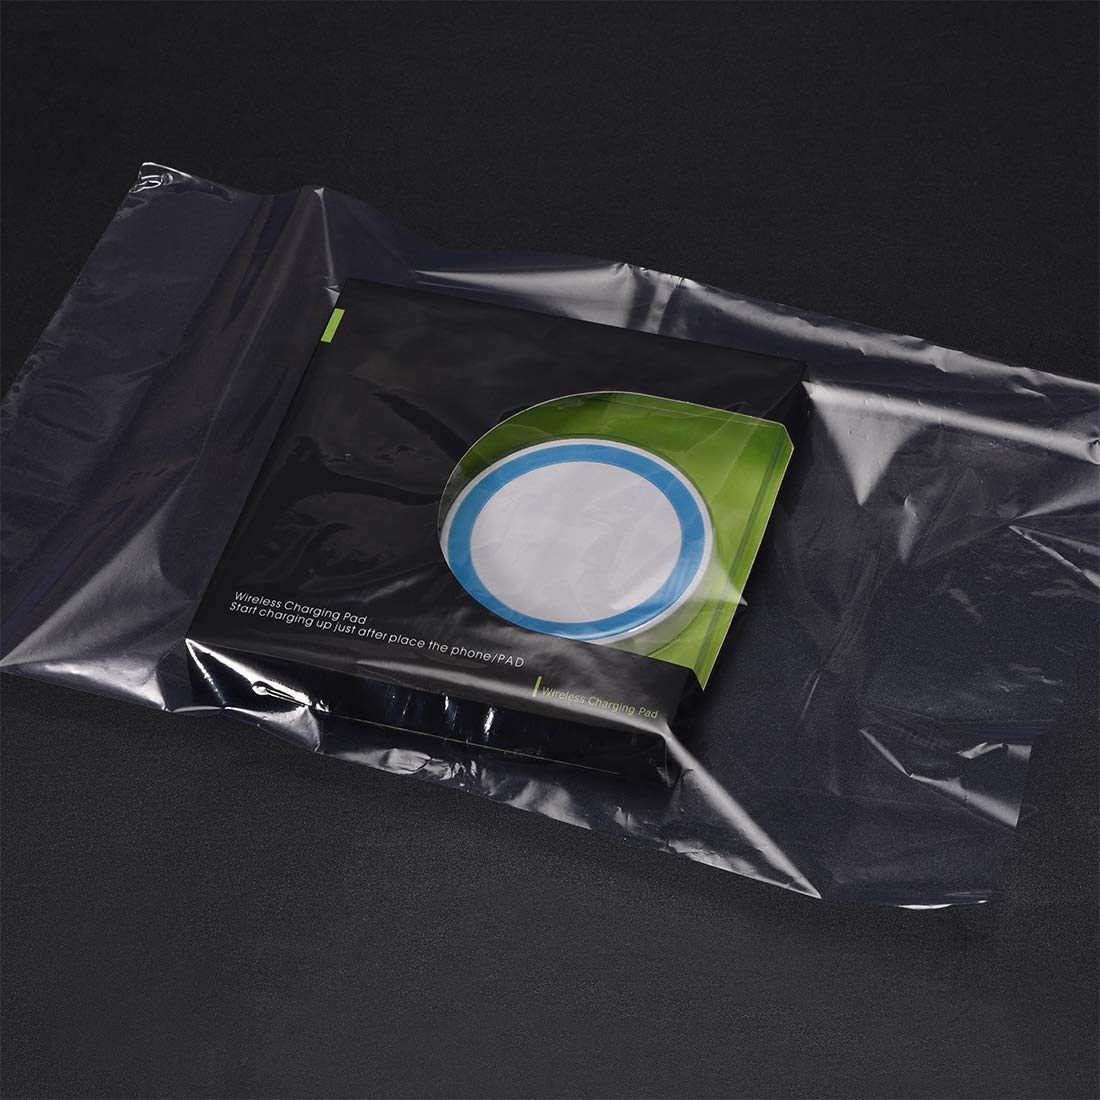 uxcell Shrink Bags PVC Heat Shrink Wrap Bags 10x6.5 inch 100pcs Shrinkable Wrapping Packaging Bags Industrial Packaging Sealer Bags